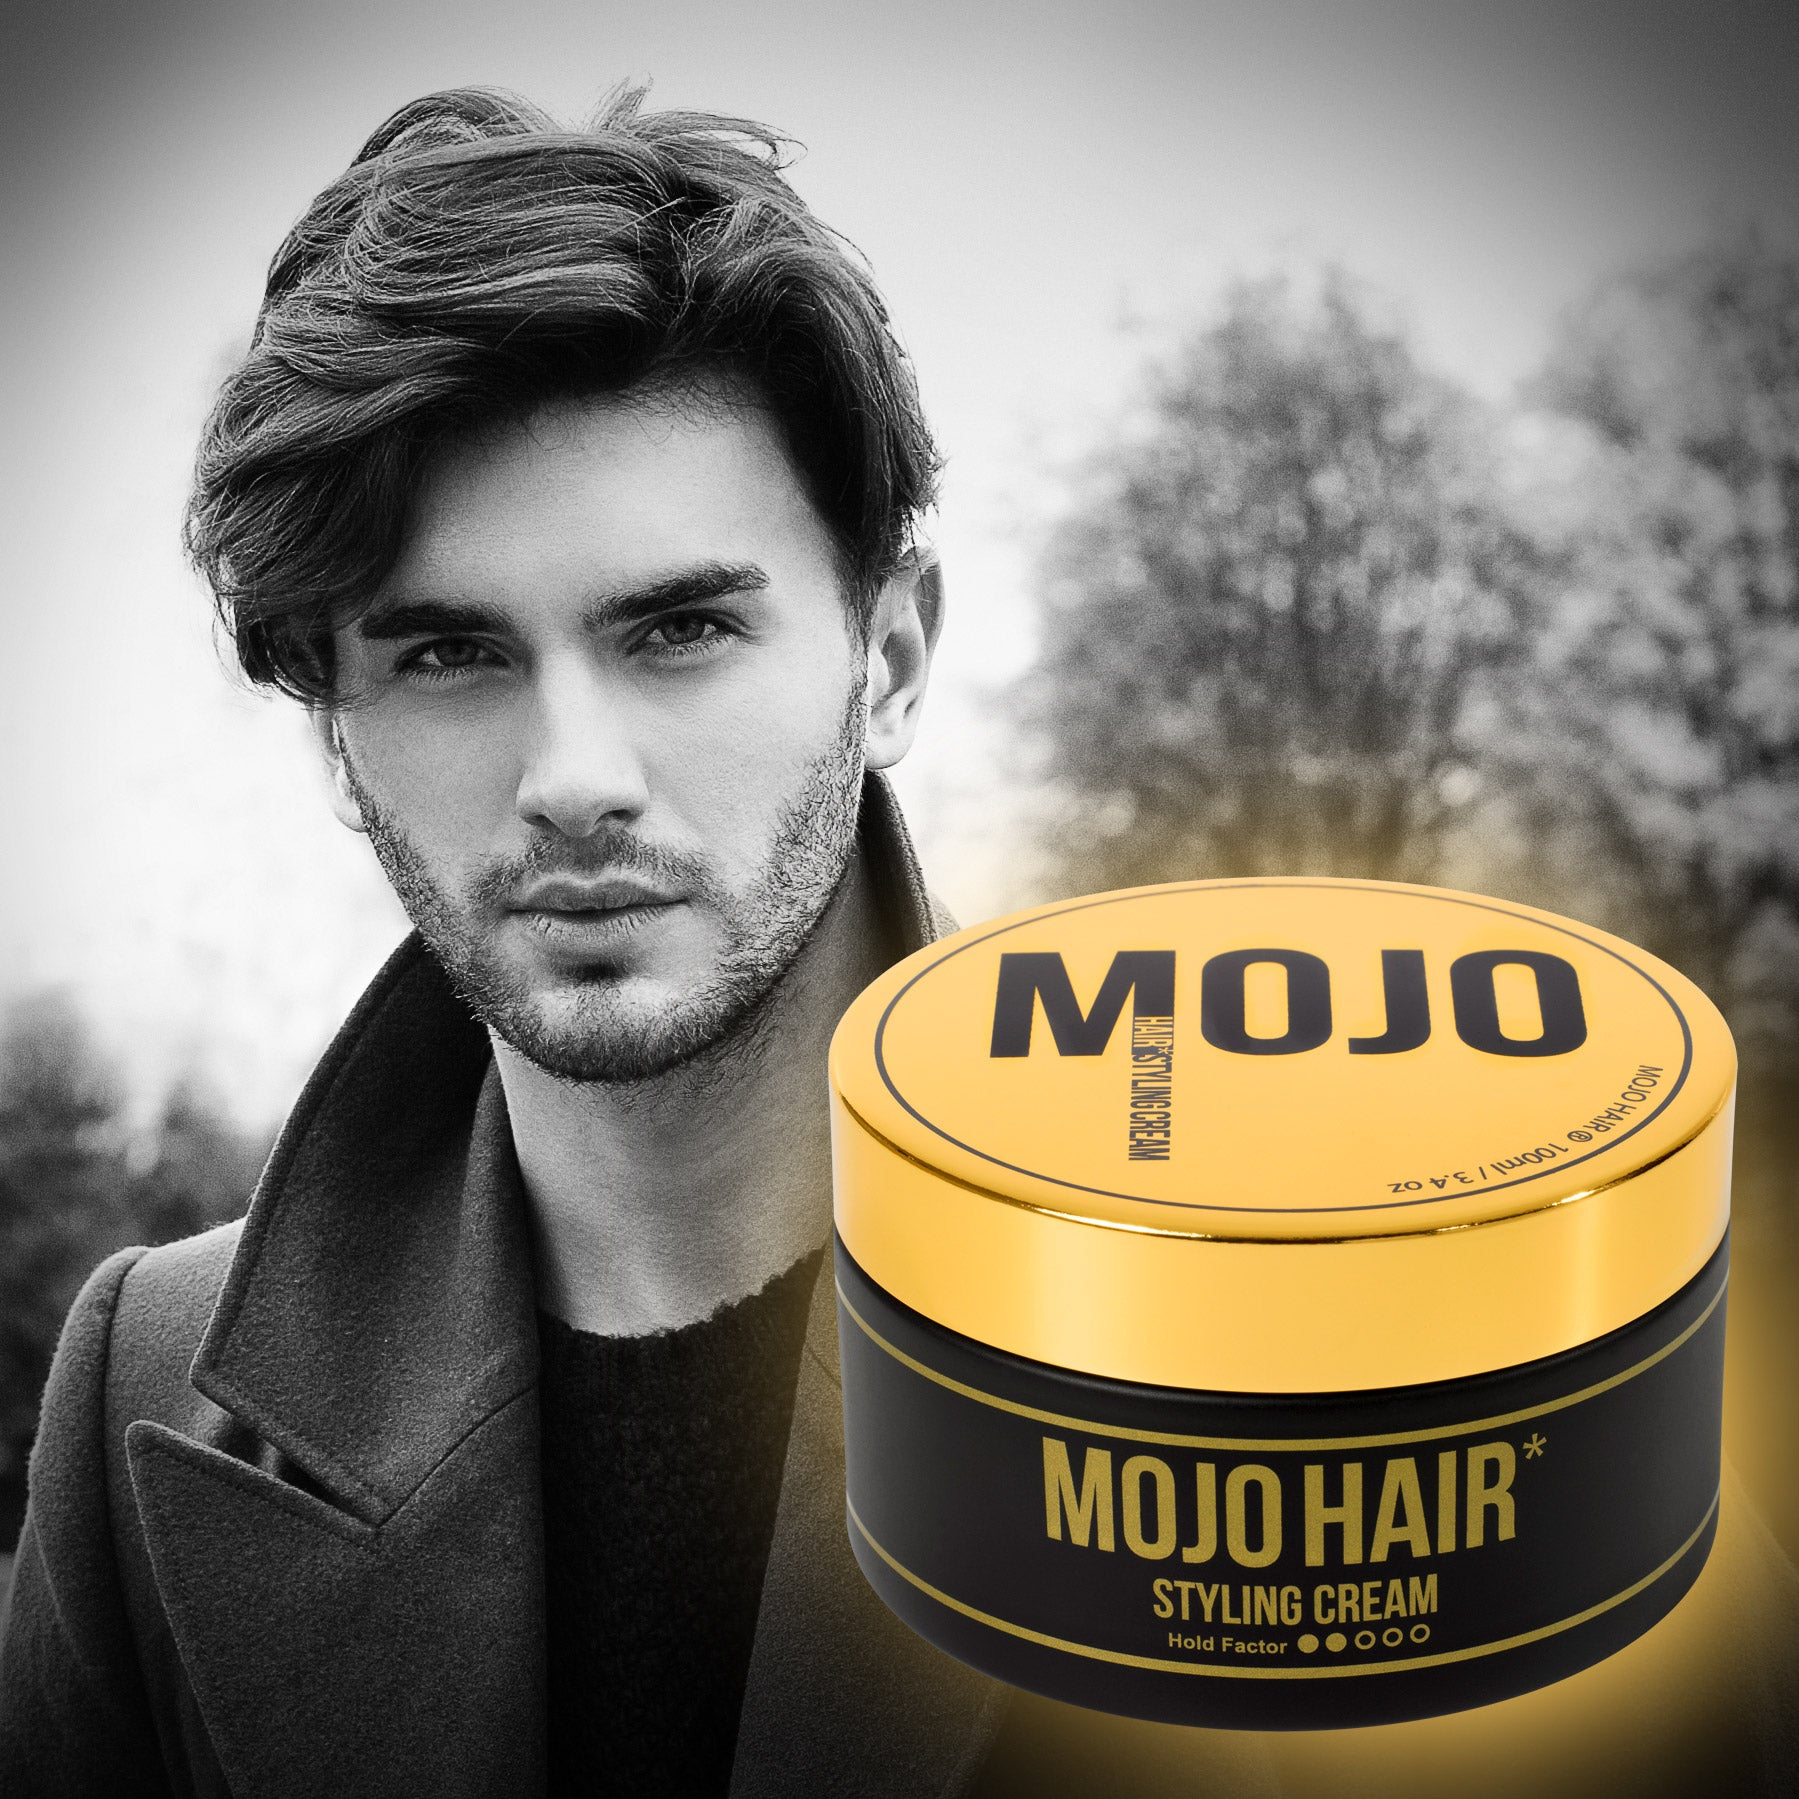 Mojo Hair* is in the Men's Official Hair Styling Guide